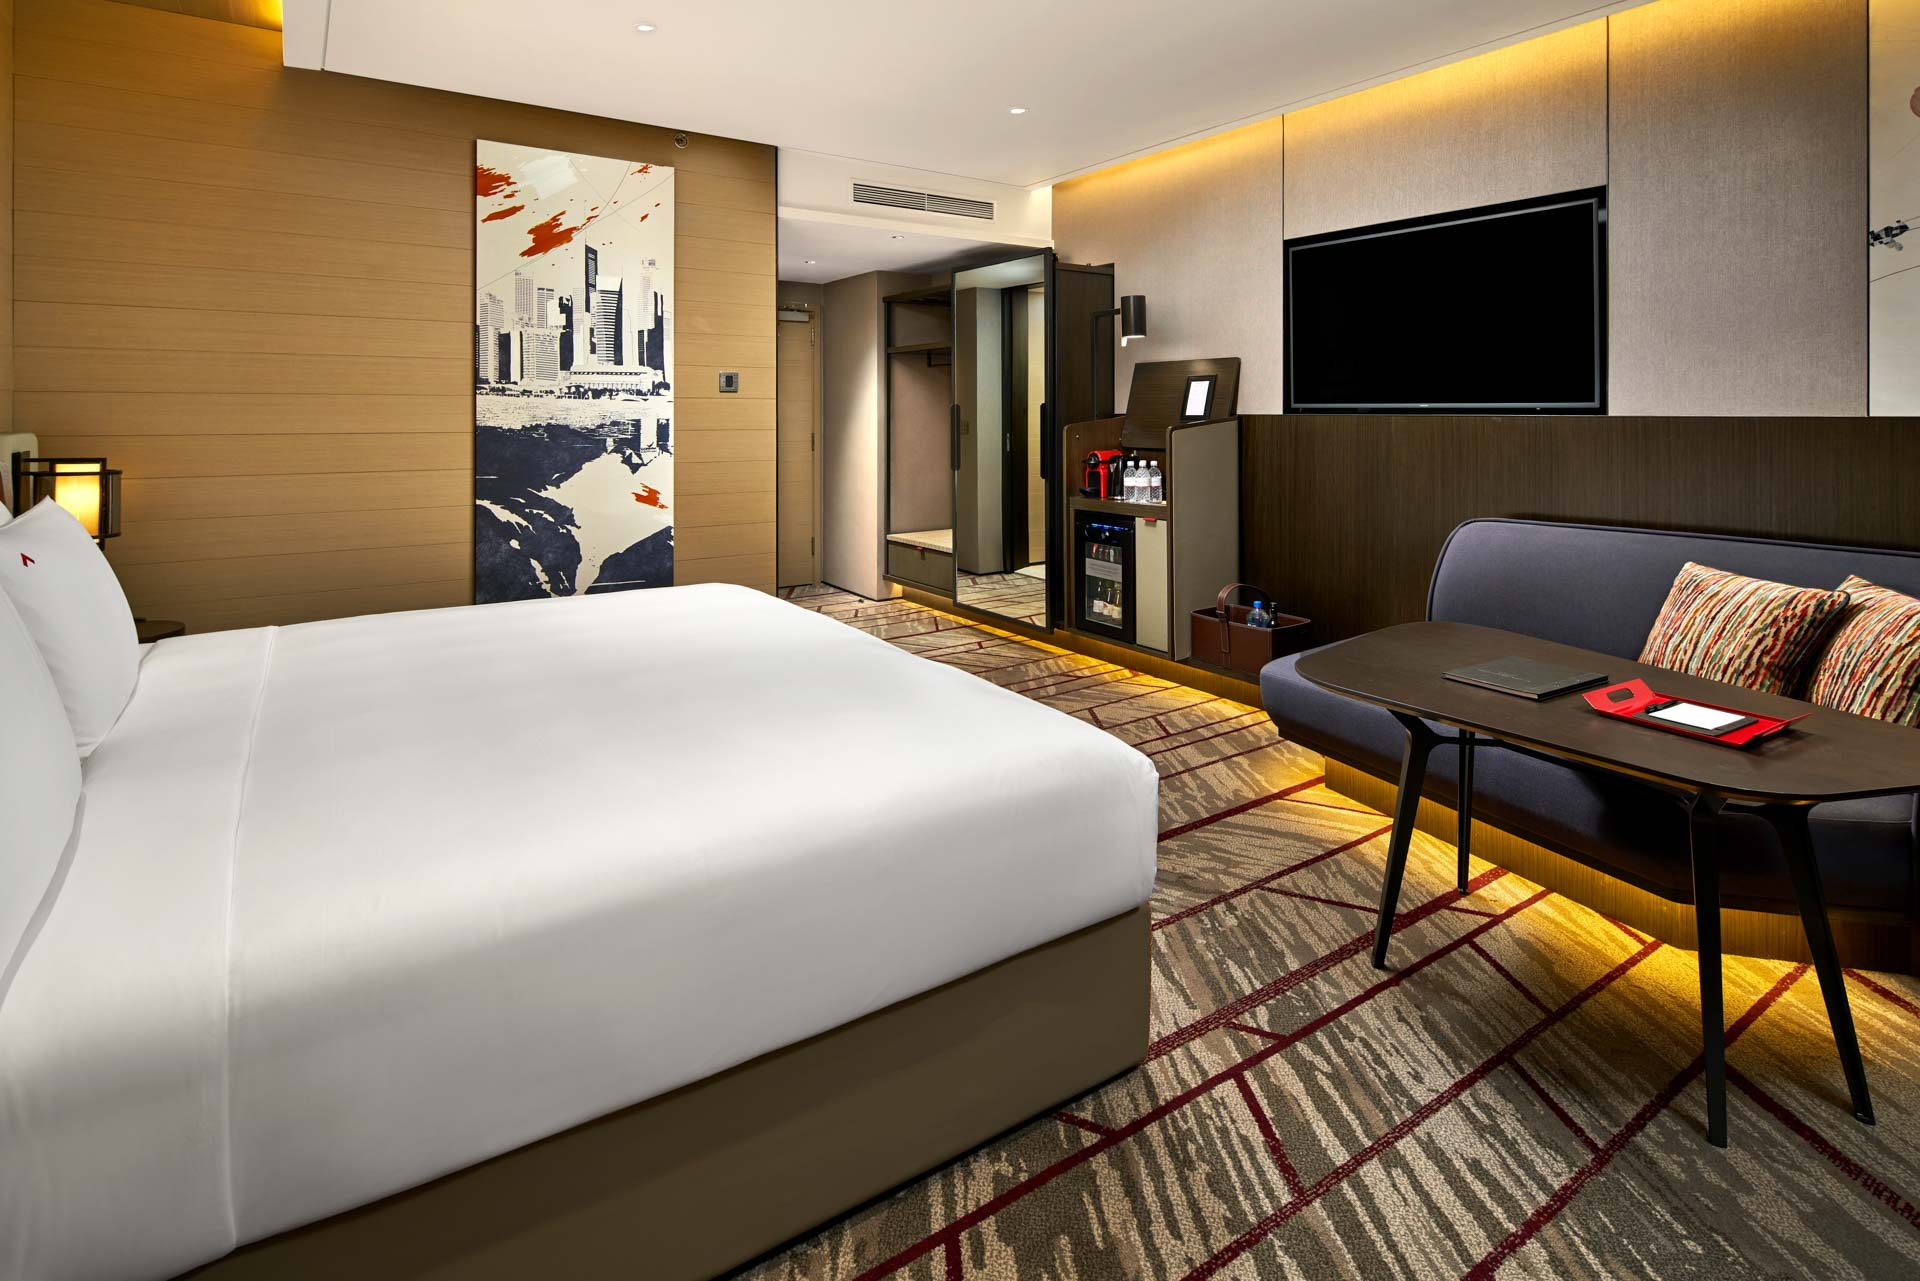 hotel photography of the king bedroom from a second angle at swissotel the stamfored in singapore